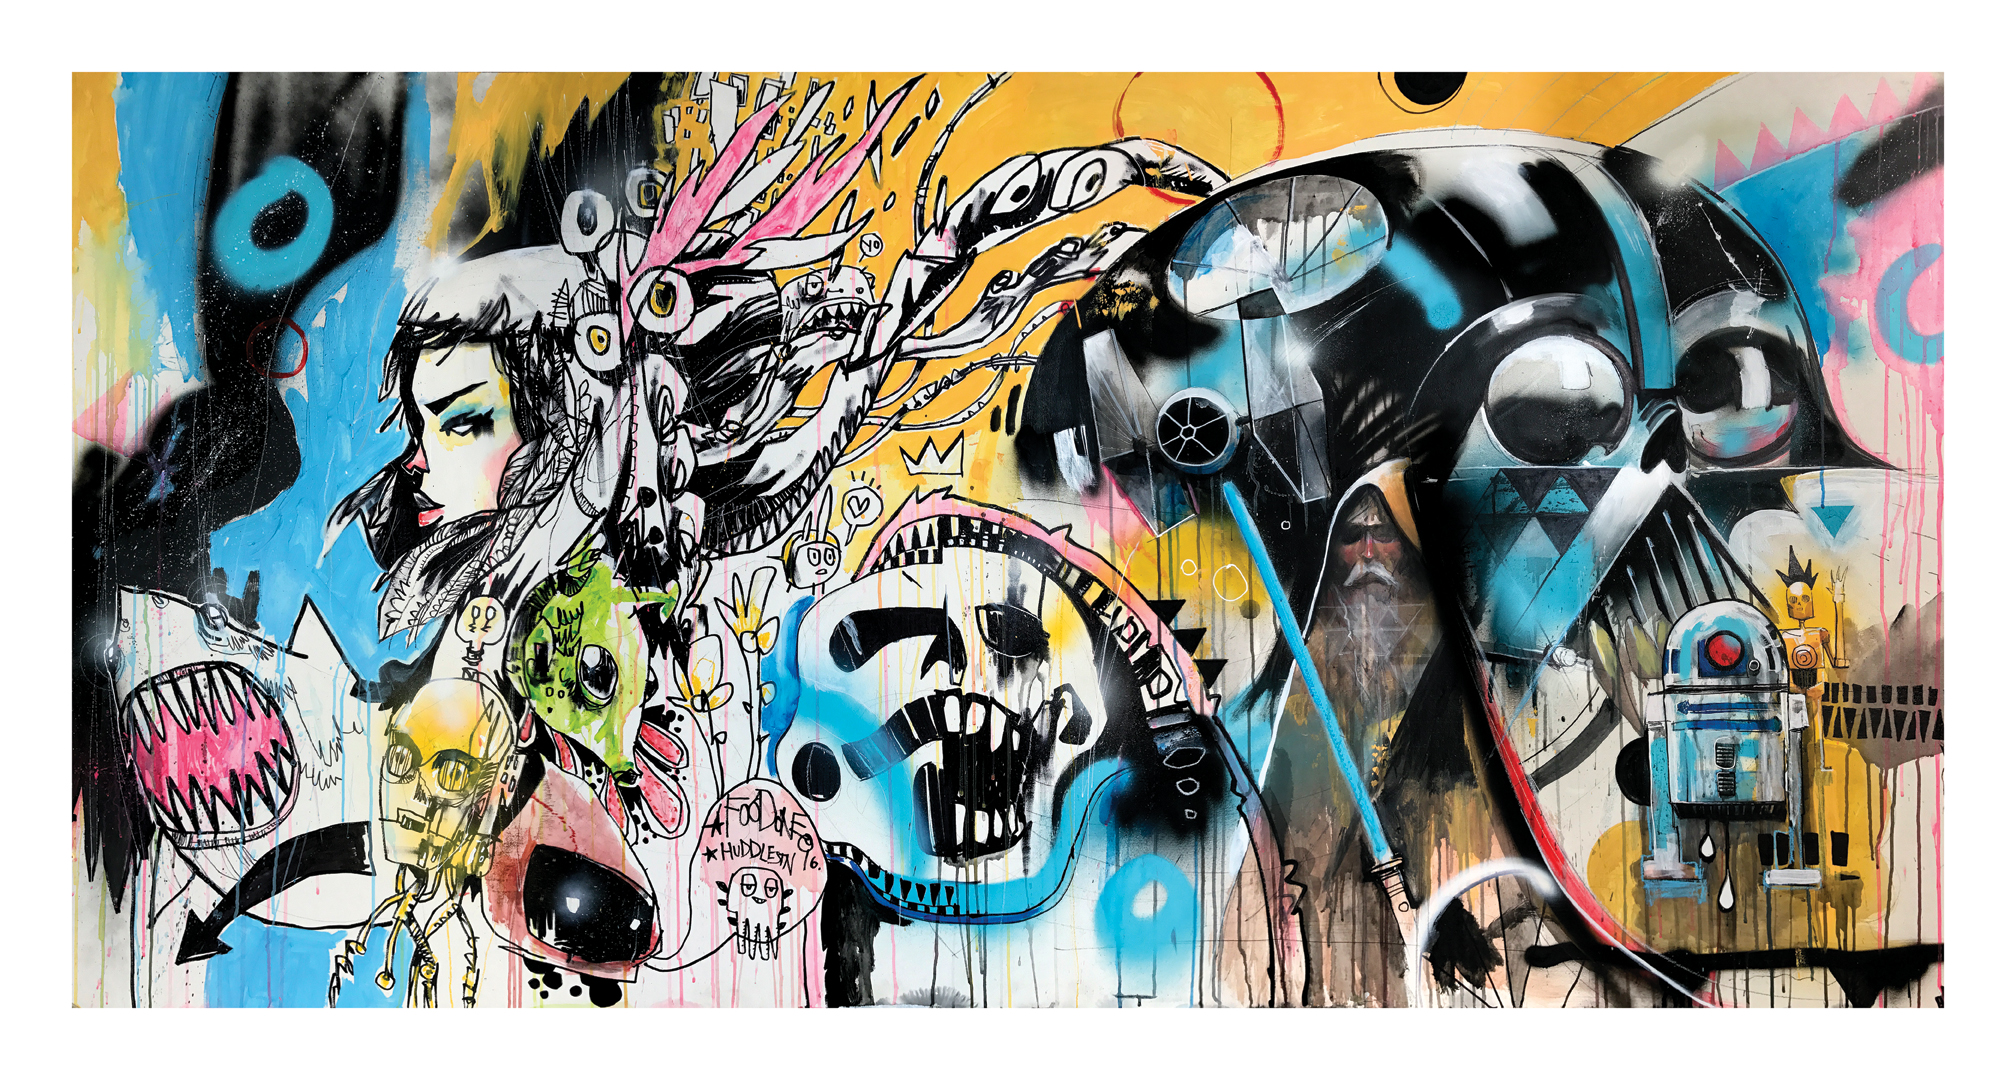 USE THE FORCE COLLAB JIM MAHFOOD & MIKE HUDDLESTON